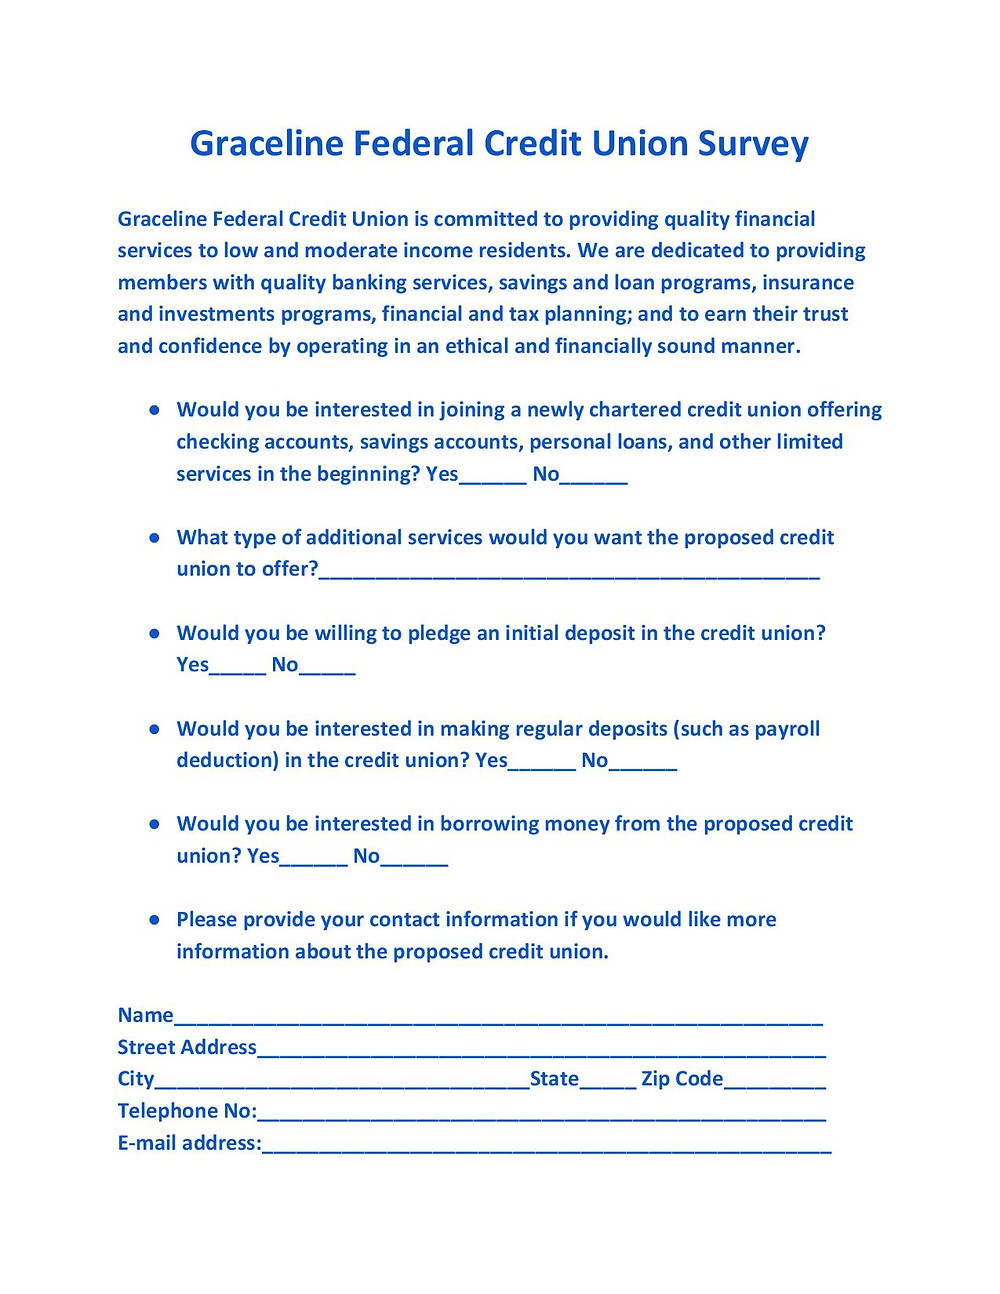 Please complete this brief survey and return by scanning and emailing pdf.